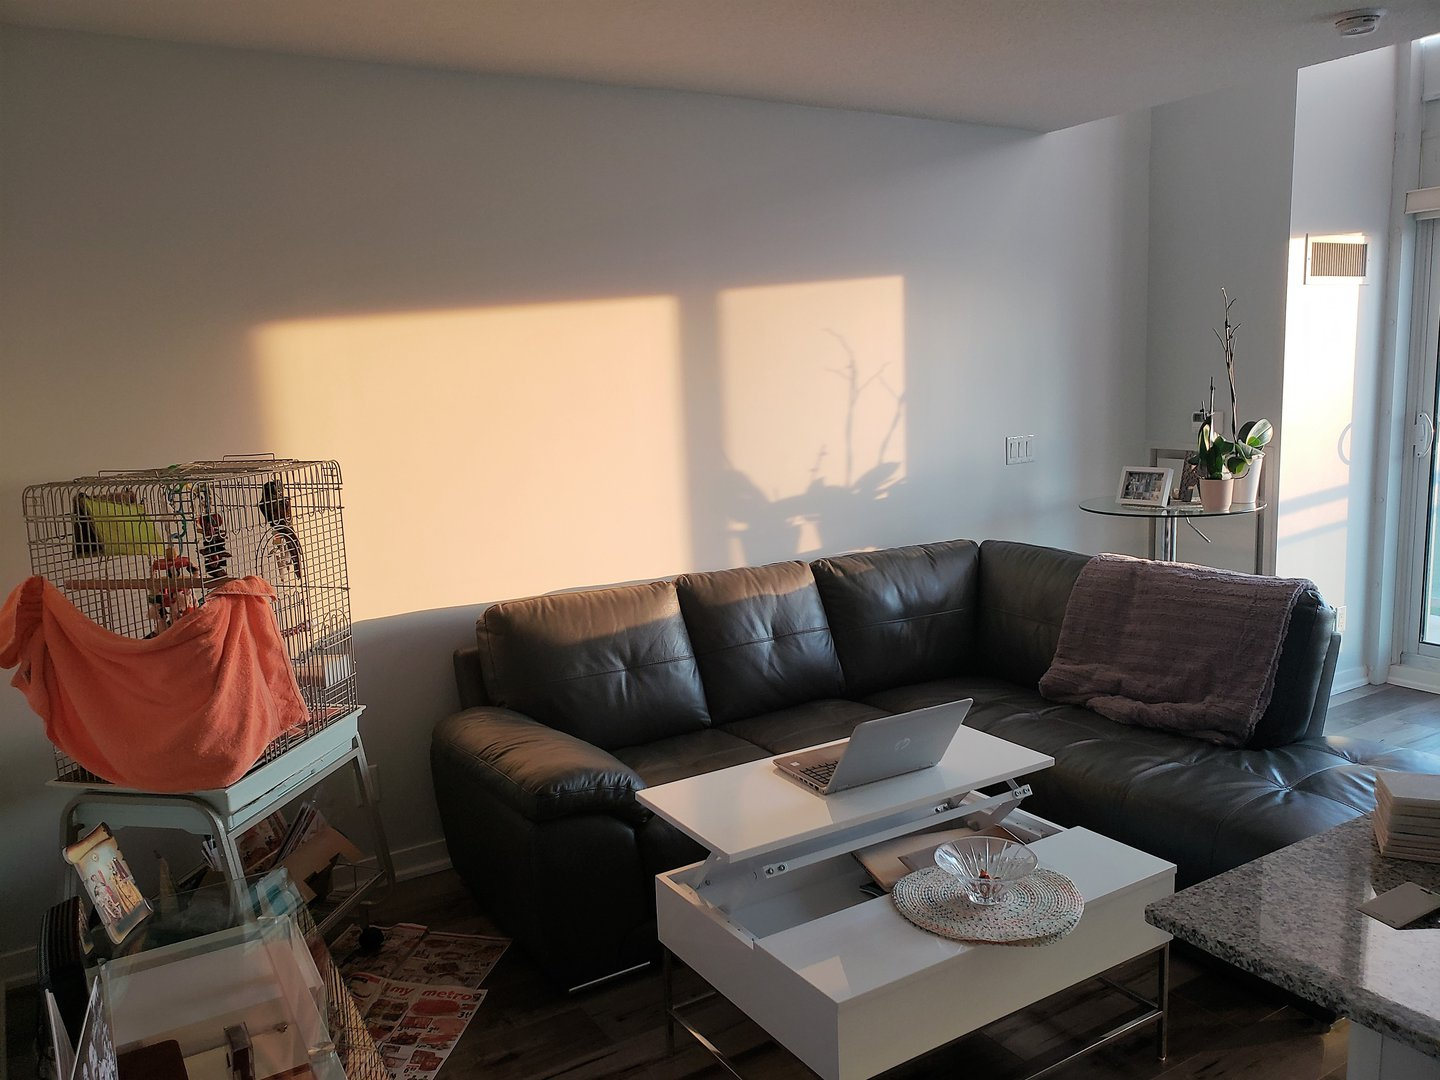 Condo for rent at 155 Legion Rd N, Etobicoke, ON. This is the living room with hardwood floor and natural light.